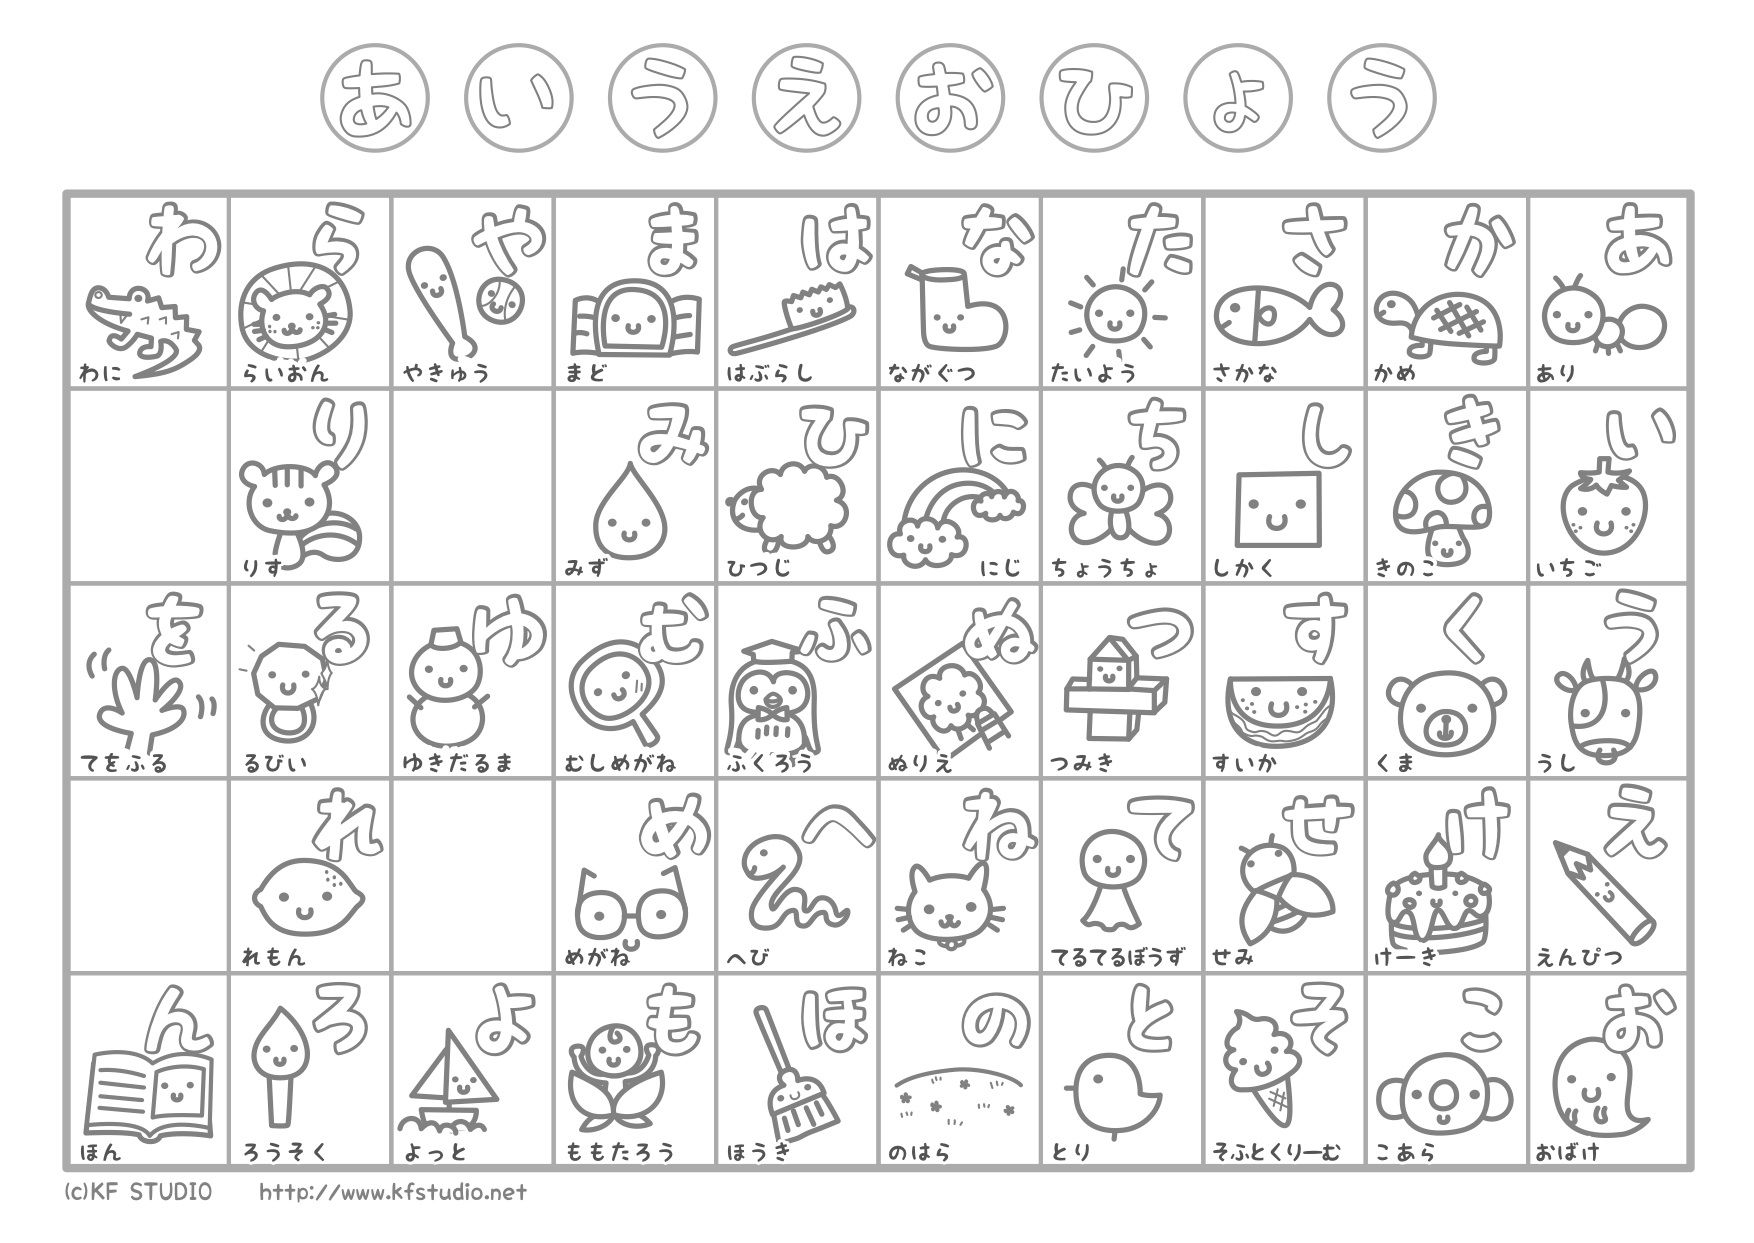 Katakana And Hiragana Charts 27 Downloadable Hiragana S Mesmerizing Cute Hiragana Charts Chart